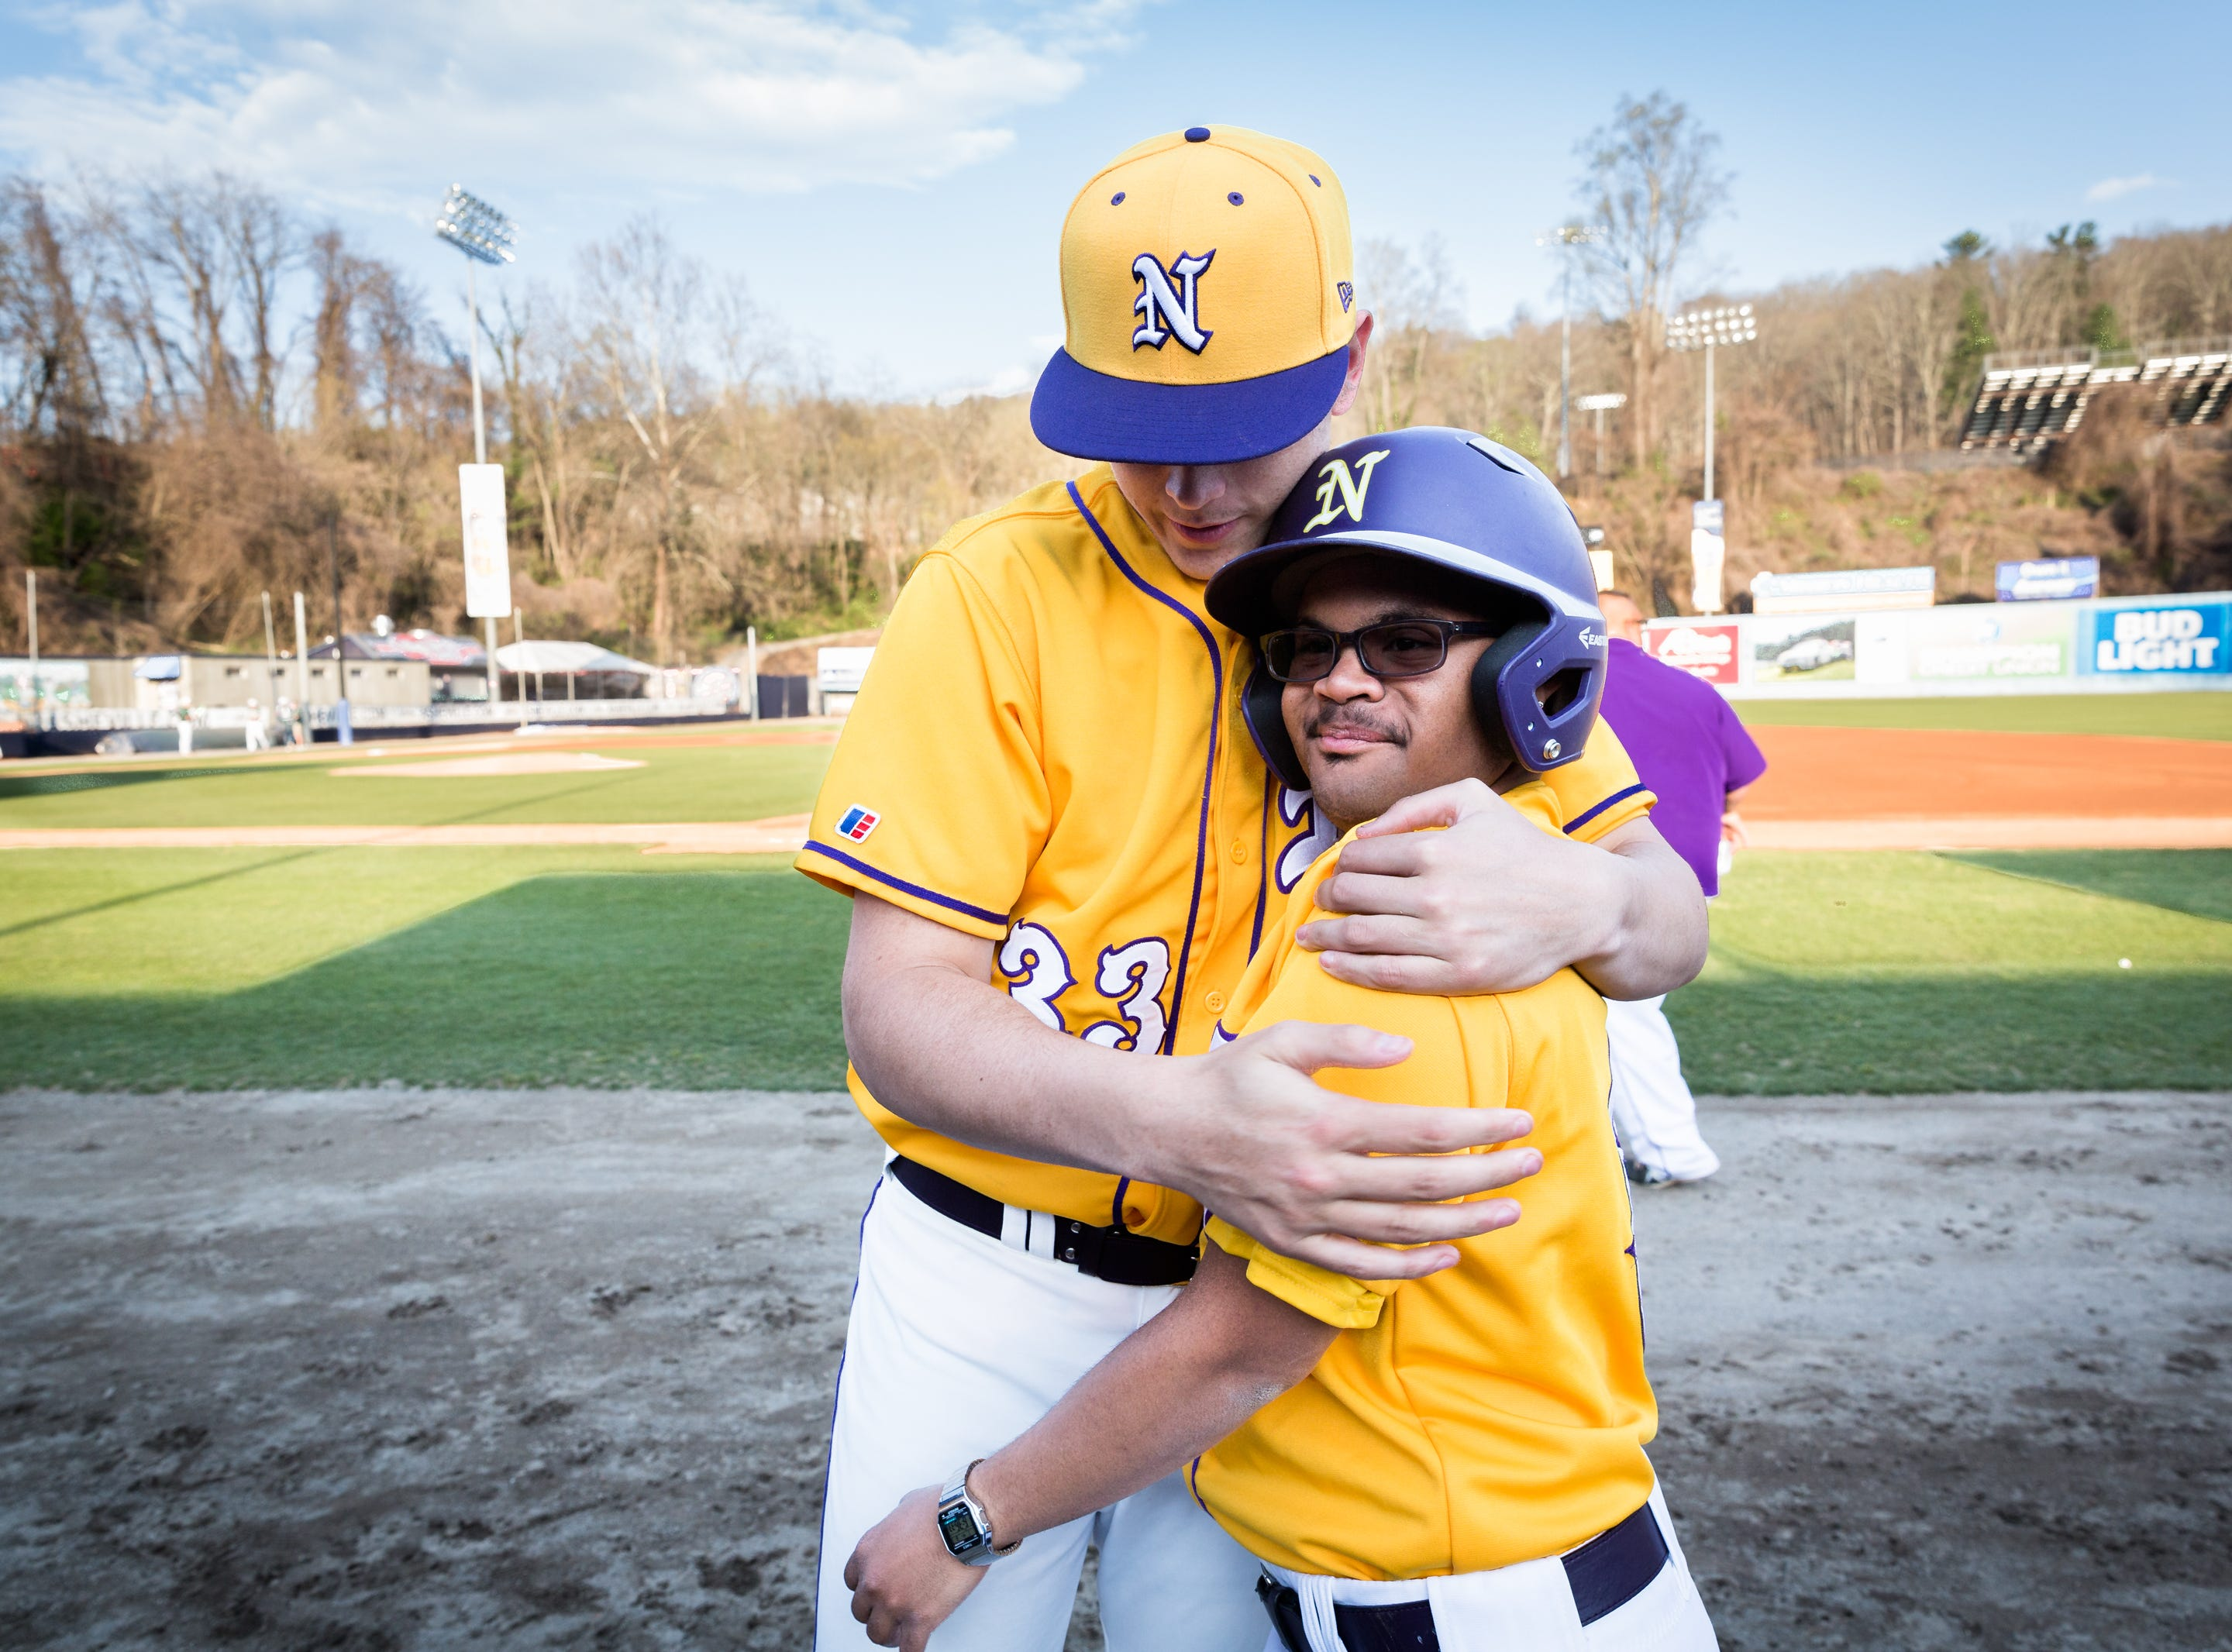 North Henderson's Gabe Murphy embraces teammate and assistant coach Alex Suder before their game against East Henderson at McCormick Field in Asheville Tuesday, April 4, 2018.